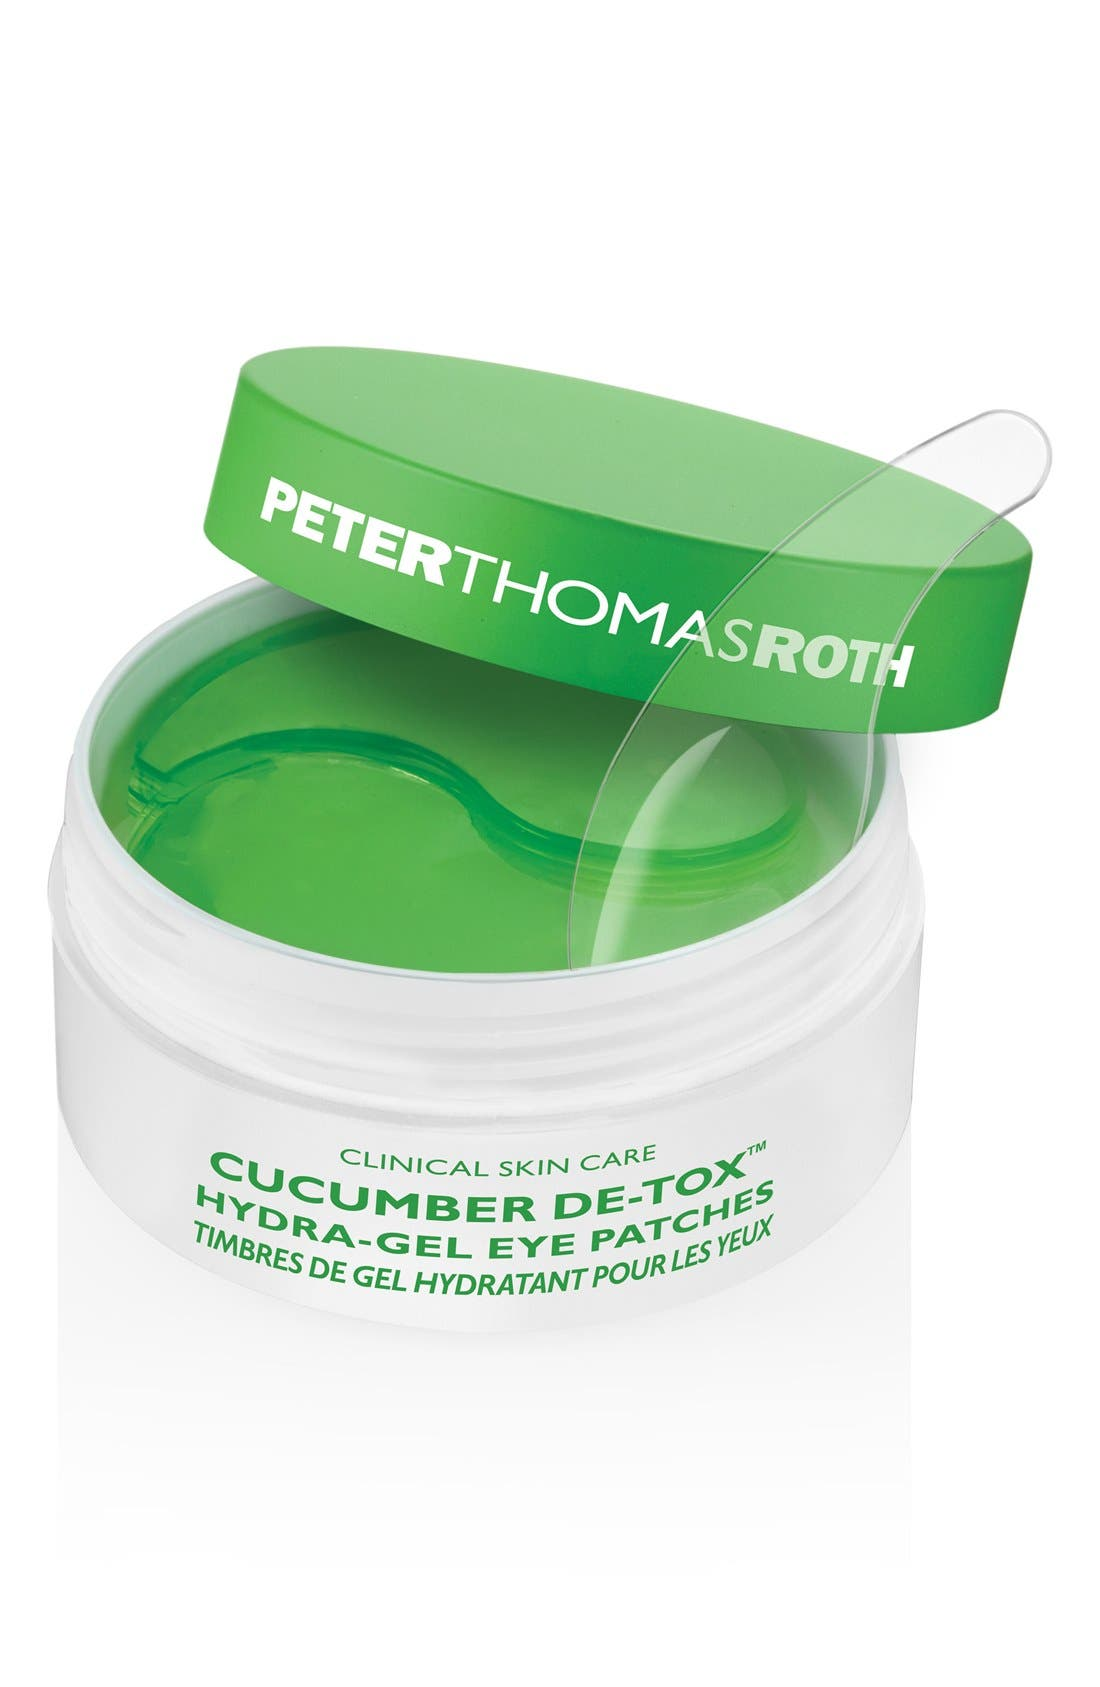 'Cucumber De-Tox<sup>™</sup>' Hydra-Gel Eye Patches,                             Main thumbnail 1, color,                             NO COLOR